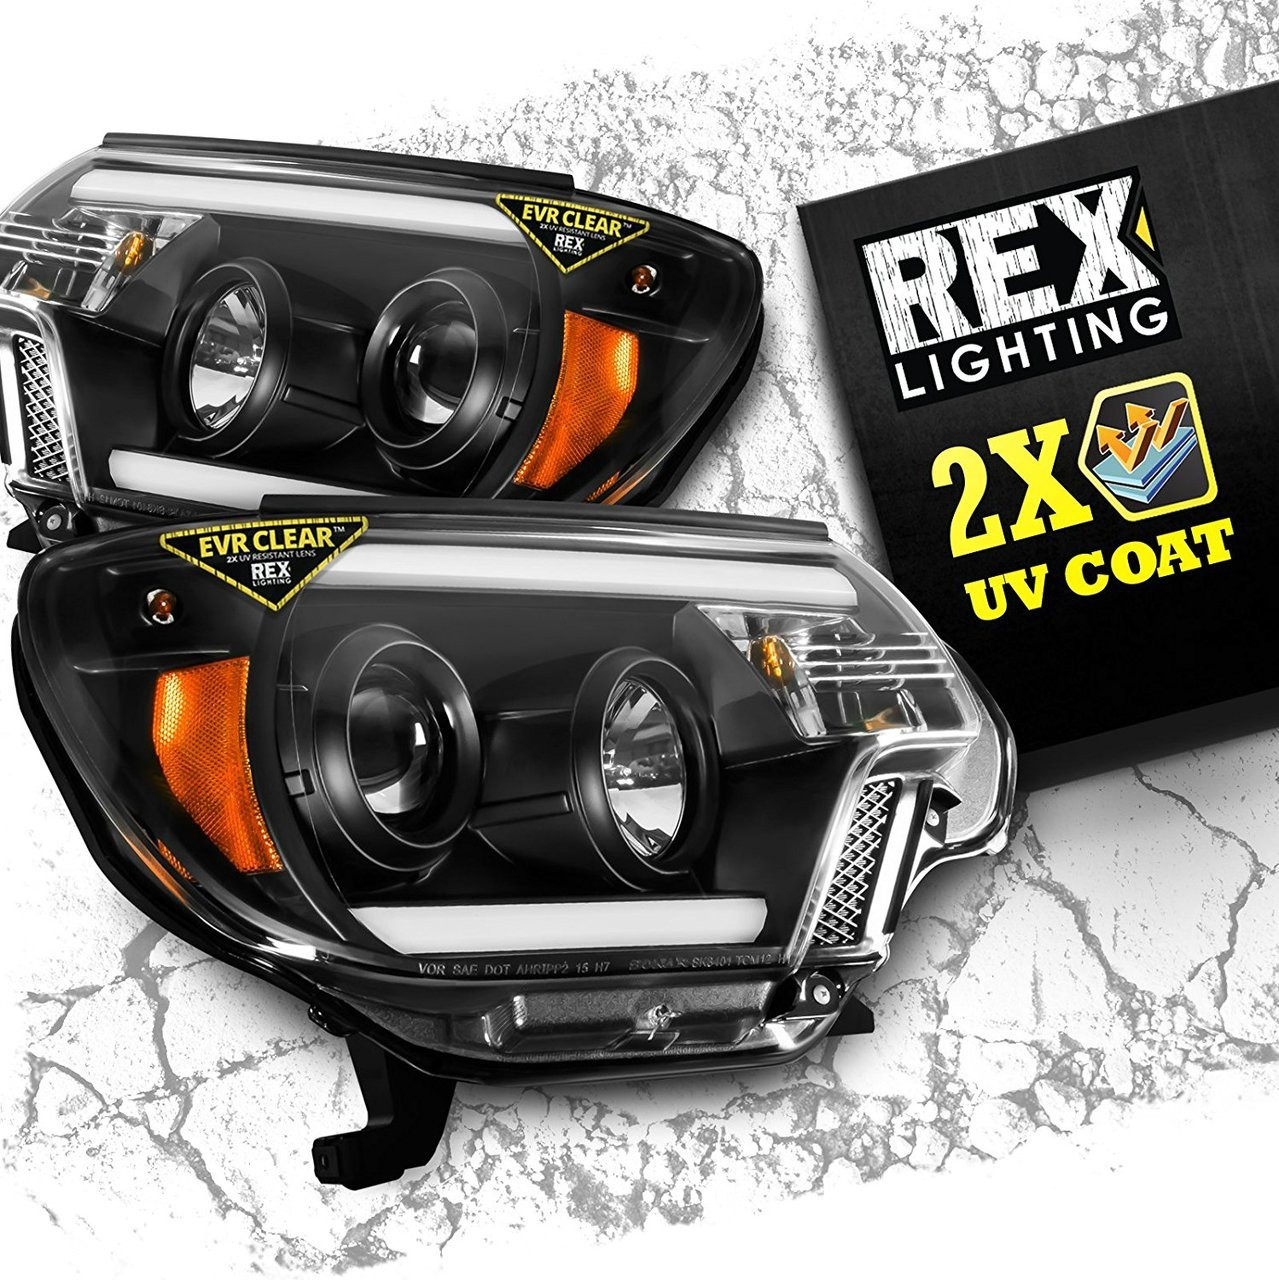 2012-2015 Toyota Tacoma Projector Headlight Assembly with DRL LEDs - Black  / Clear Lens - REX Lighting